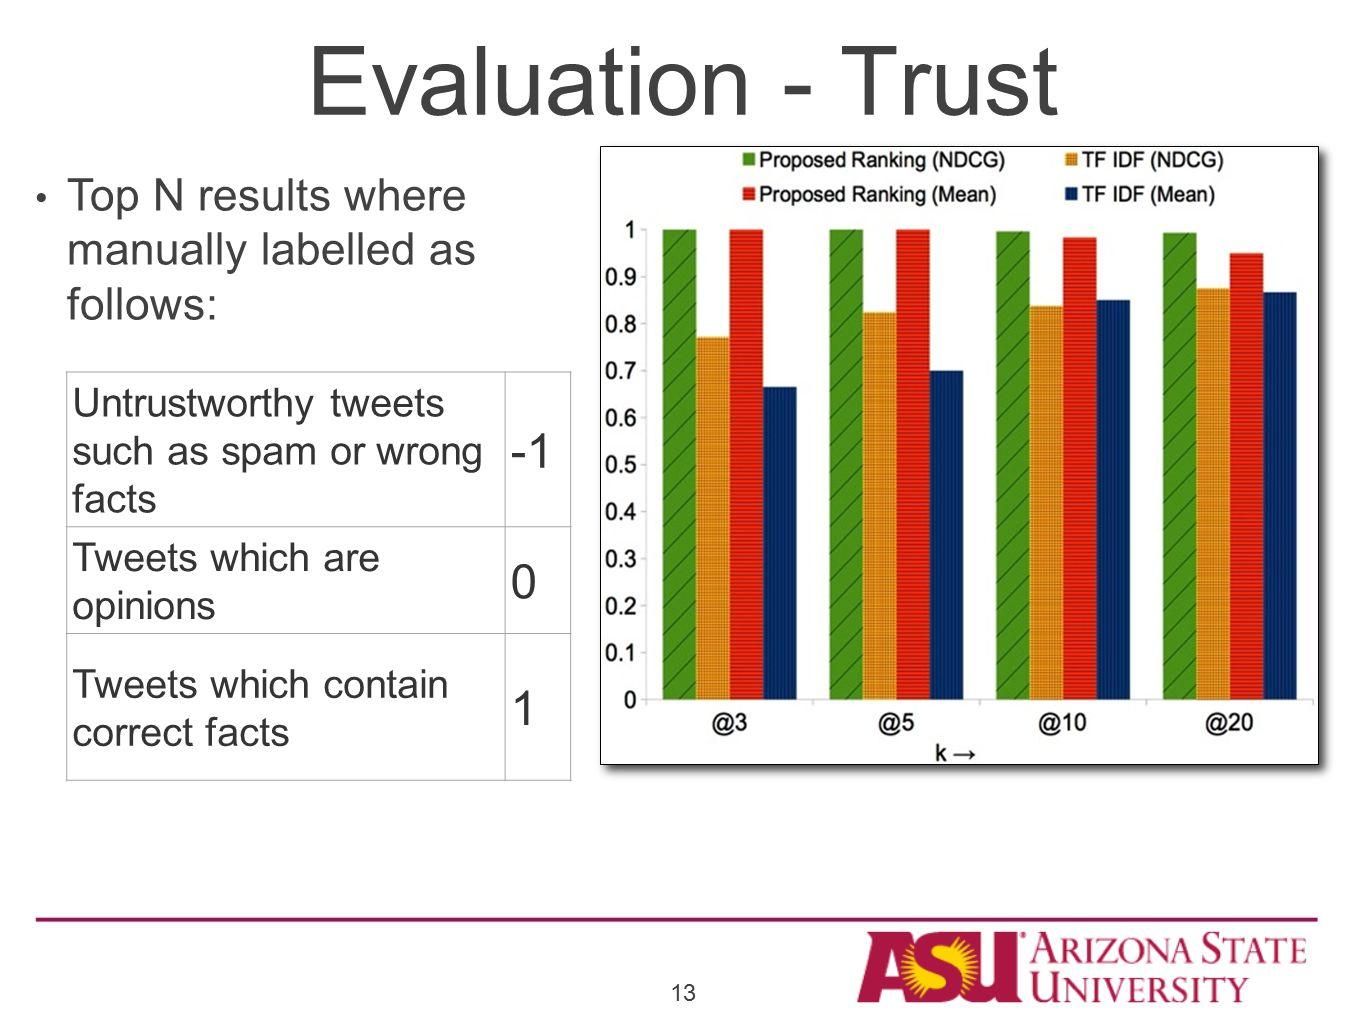 Evaluation - Trust Untrustworthy tweets such as spam or wrong facts Tweets which are opinions 0 Tweets which contain correct facts 1 Top N results where manually labelled as follows: 13